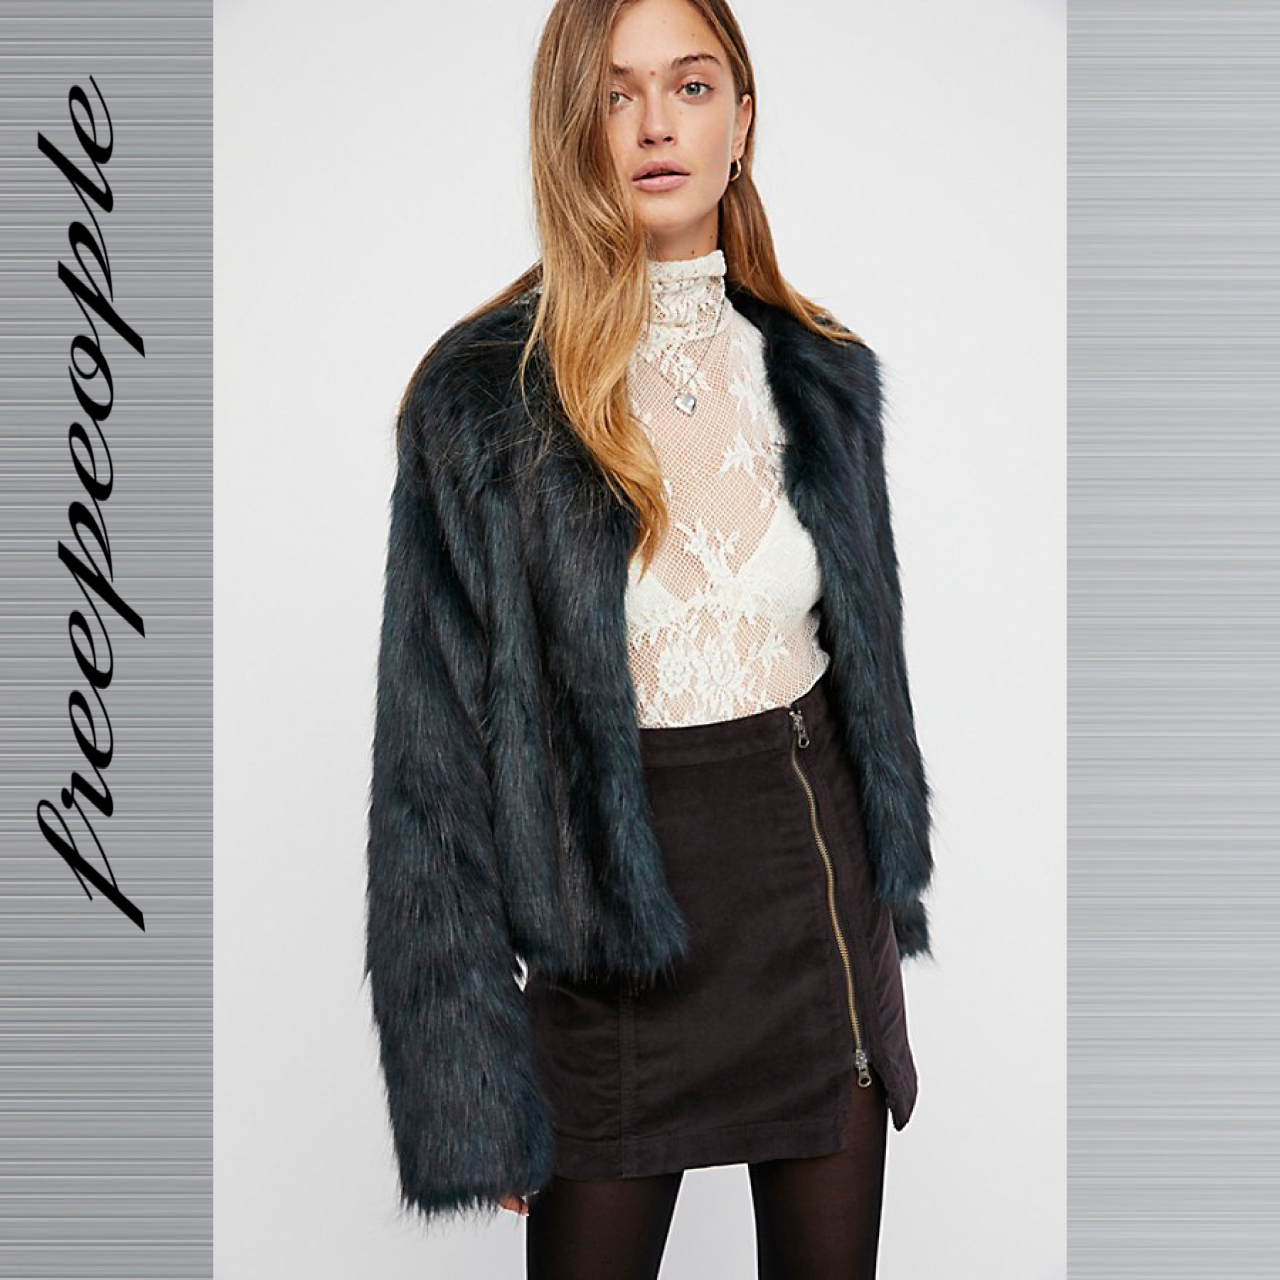 Free People フリーピープル This Way Or That ミニスカート